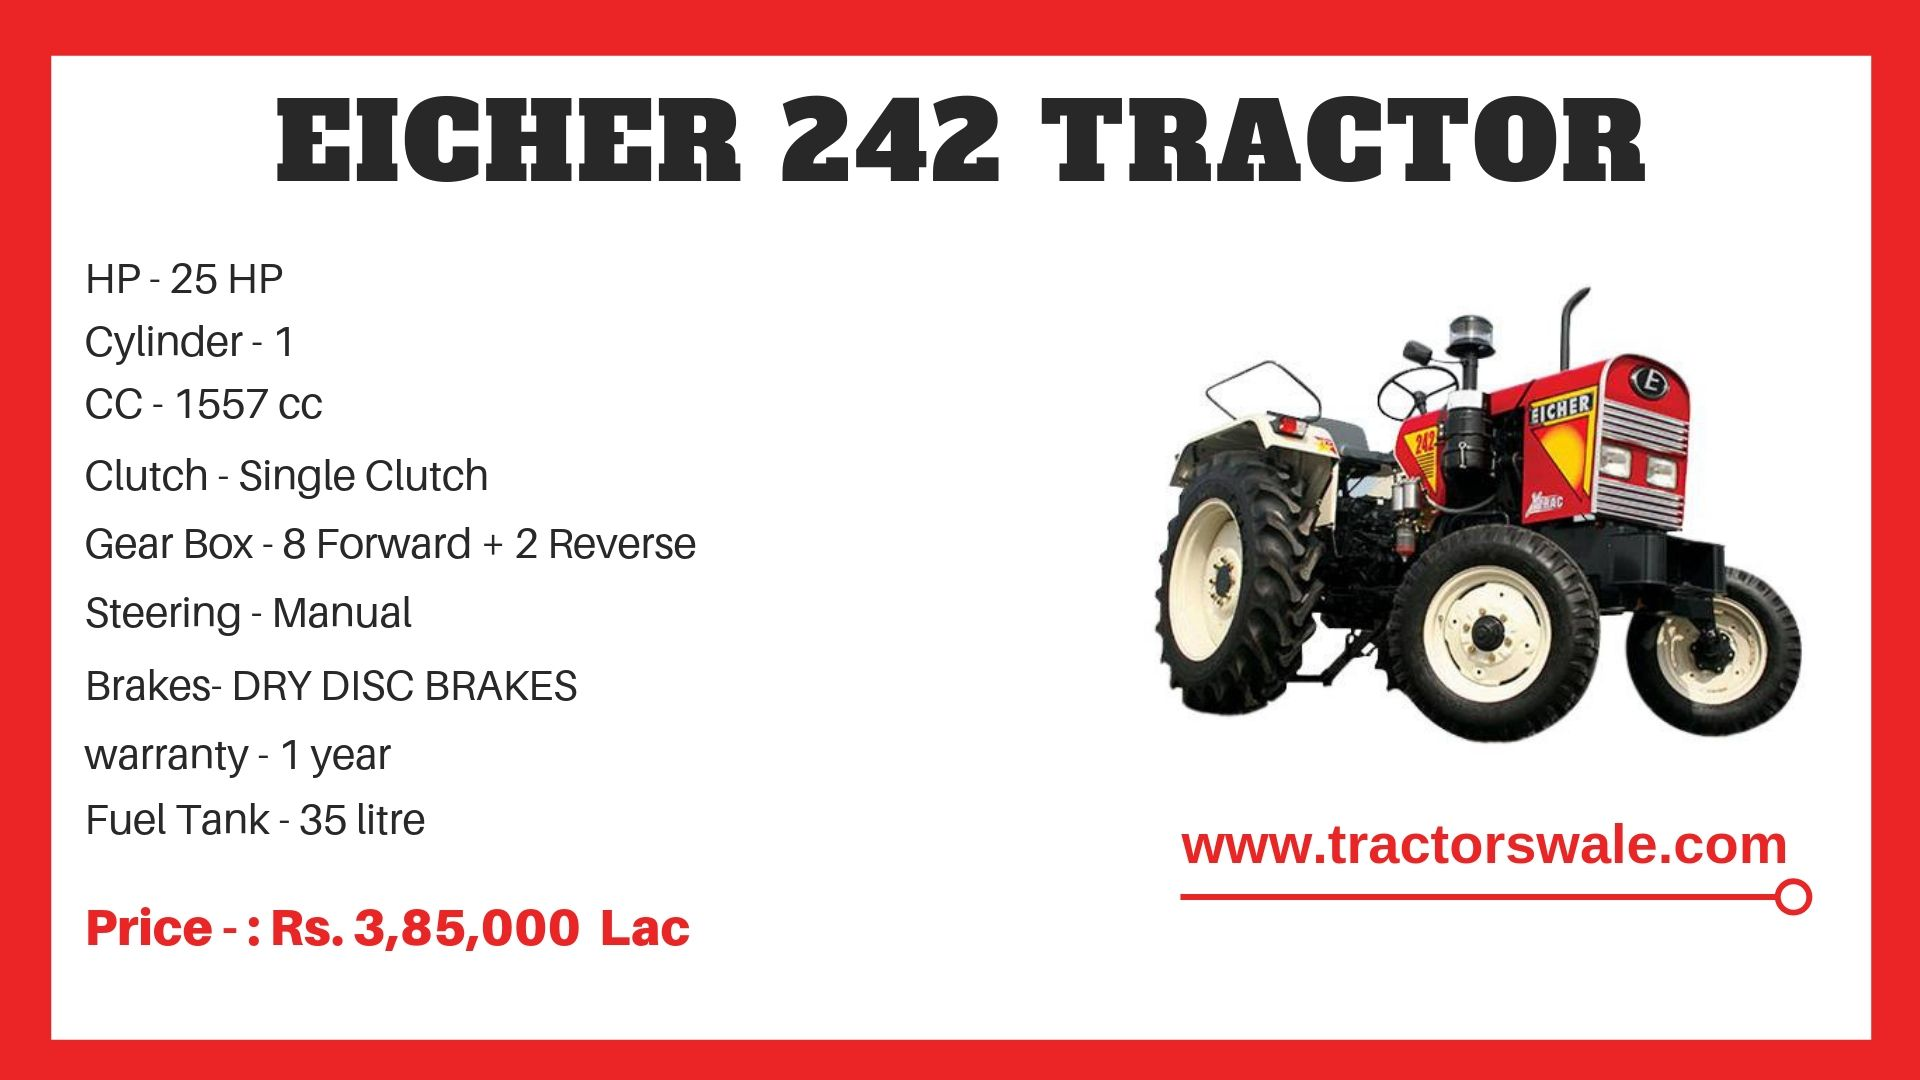 Eicher Tractor 242 Specifications